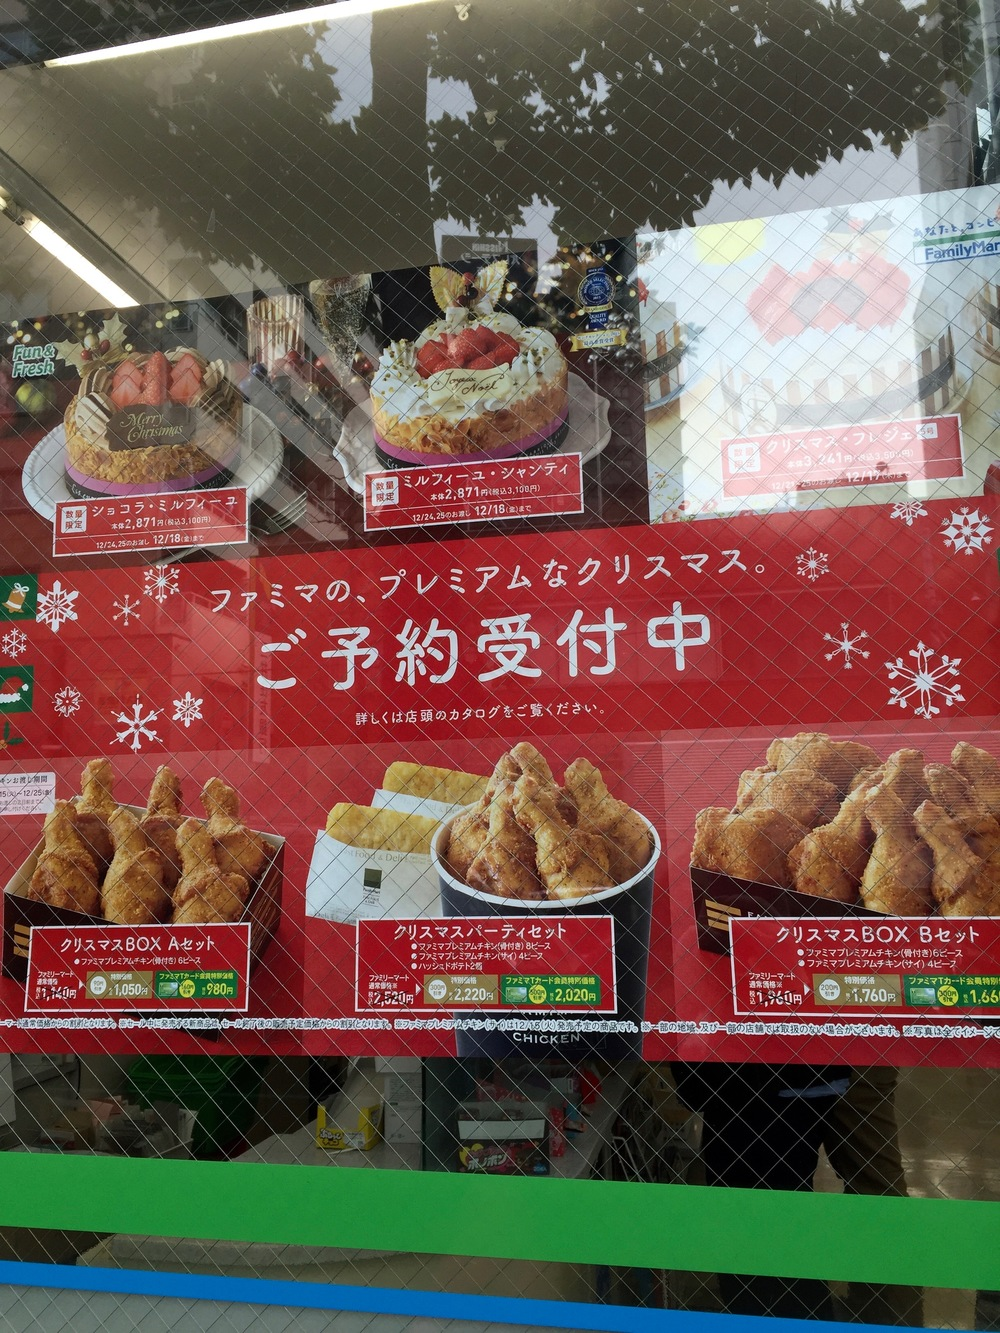 Family Mart has Christmas chicken too